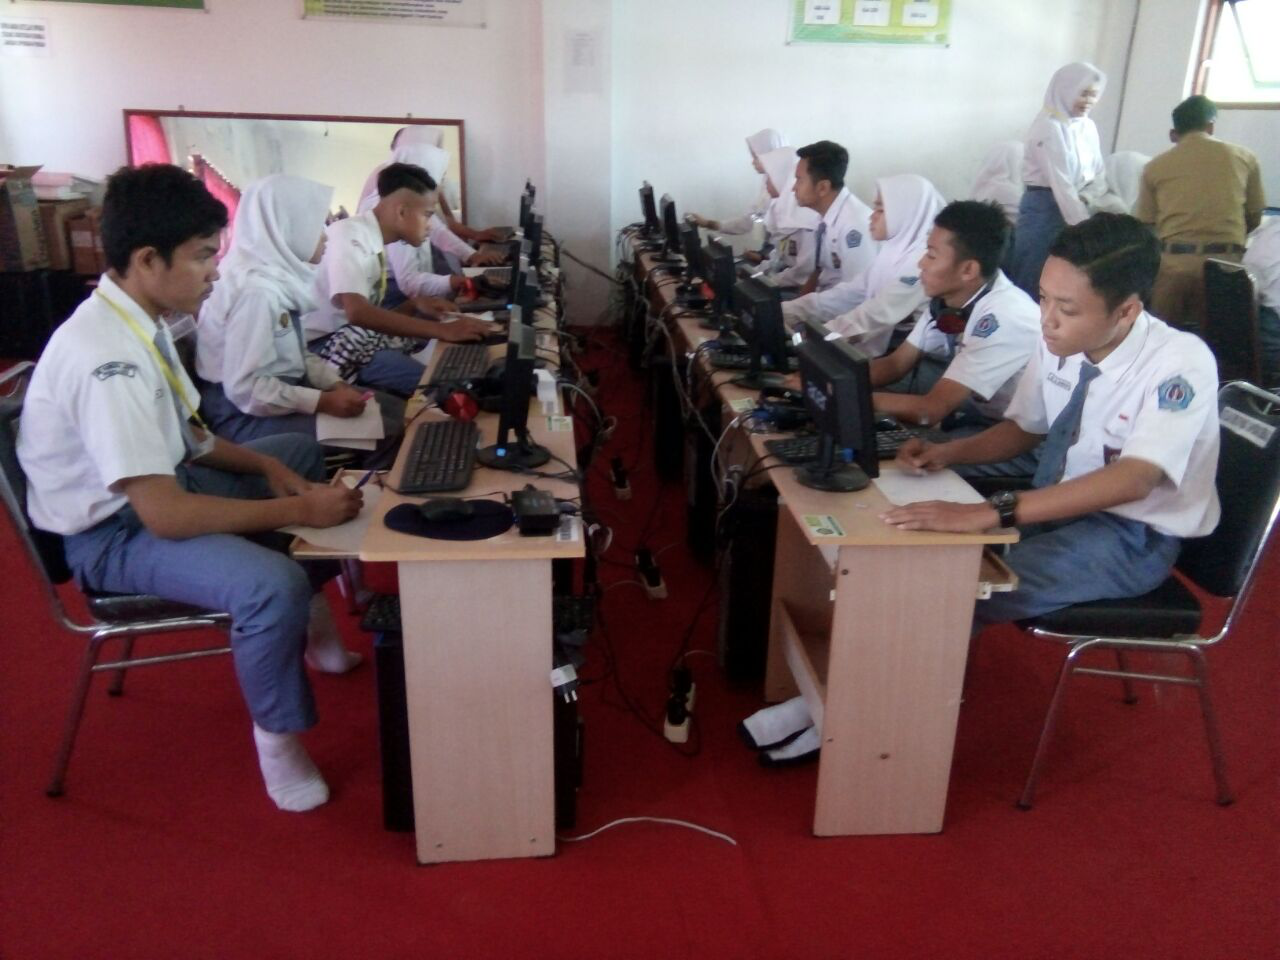 LibertyTourismHighSchoolInIndonesia-sharedcomputingsolution03